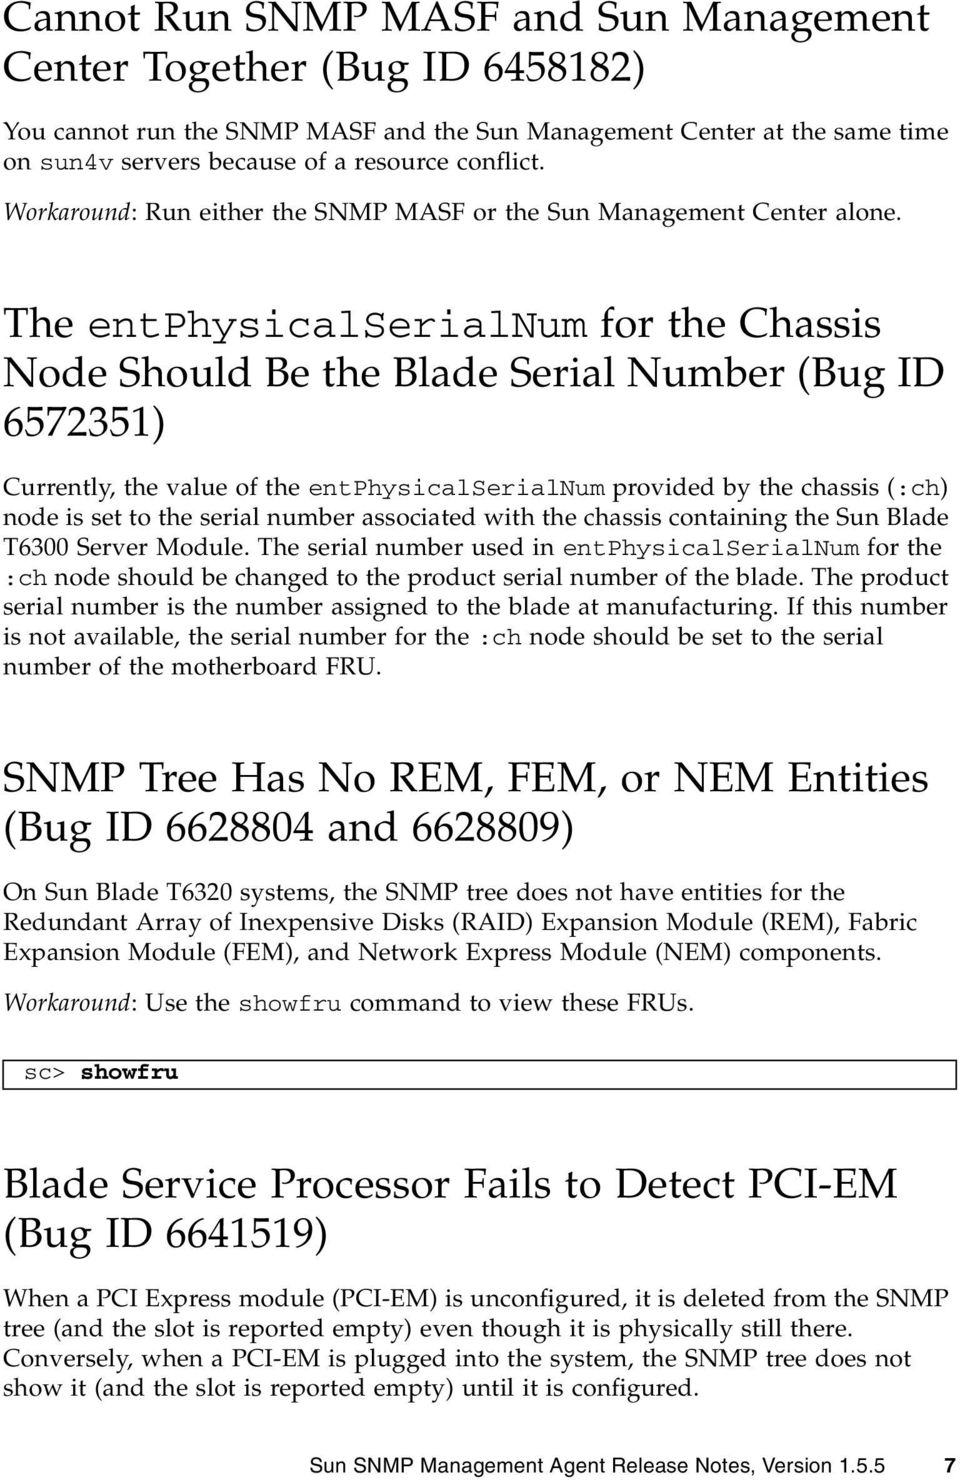 The entphysicalserialnum for the Chassis Node Should Be the Blade Serial Number (Bug ID 6572351) Currently, the value of the entphysicalserialnum provided by the chassis (:ch) node is set to the